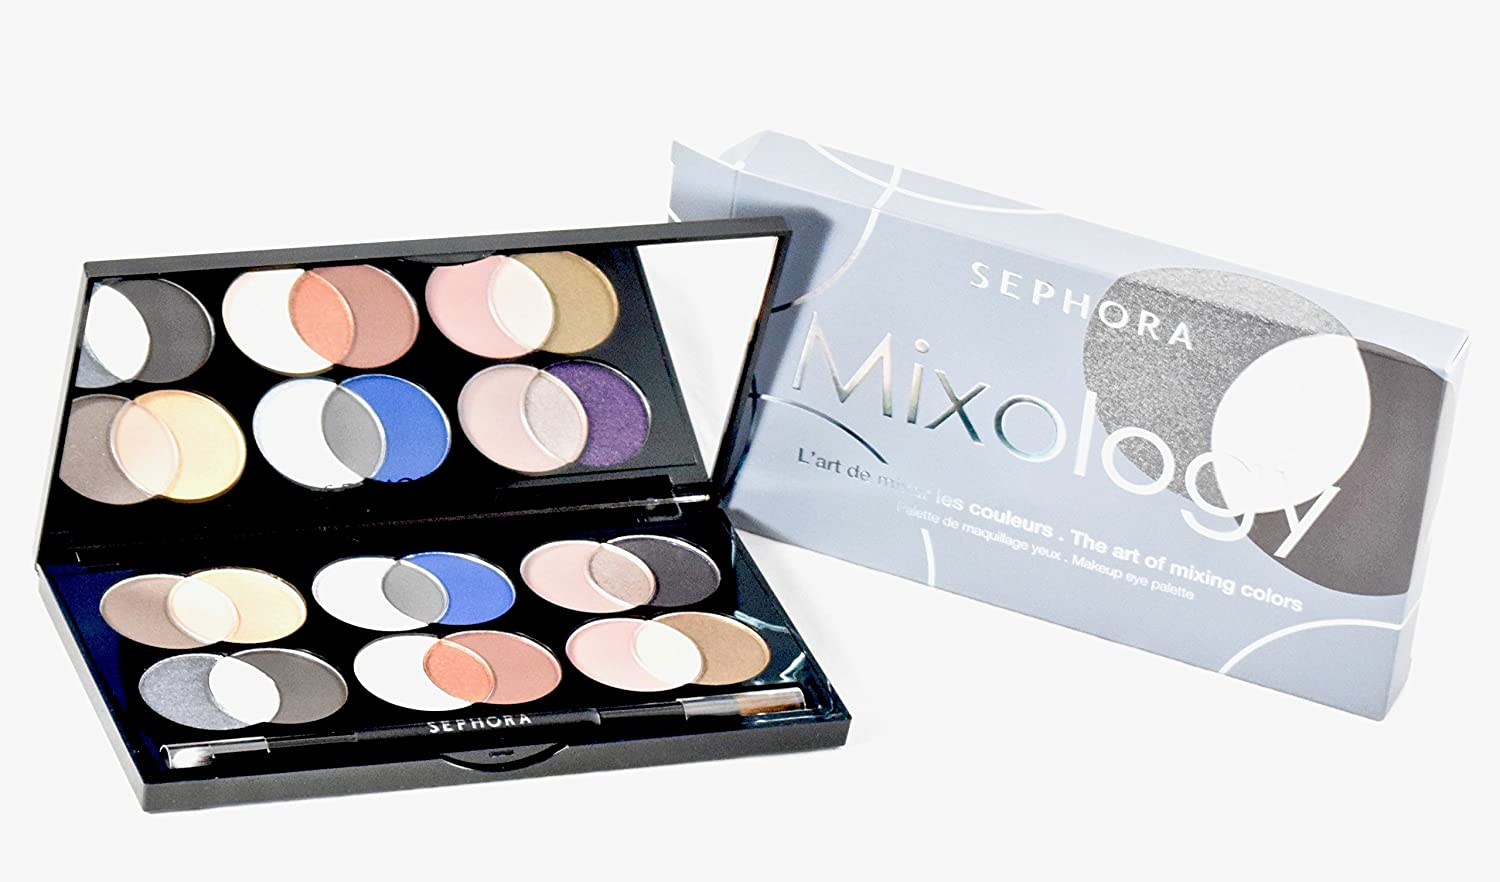 Mixology Eyeshadow Palette - Hot & Spicy by Sephora Collection #20